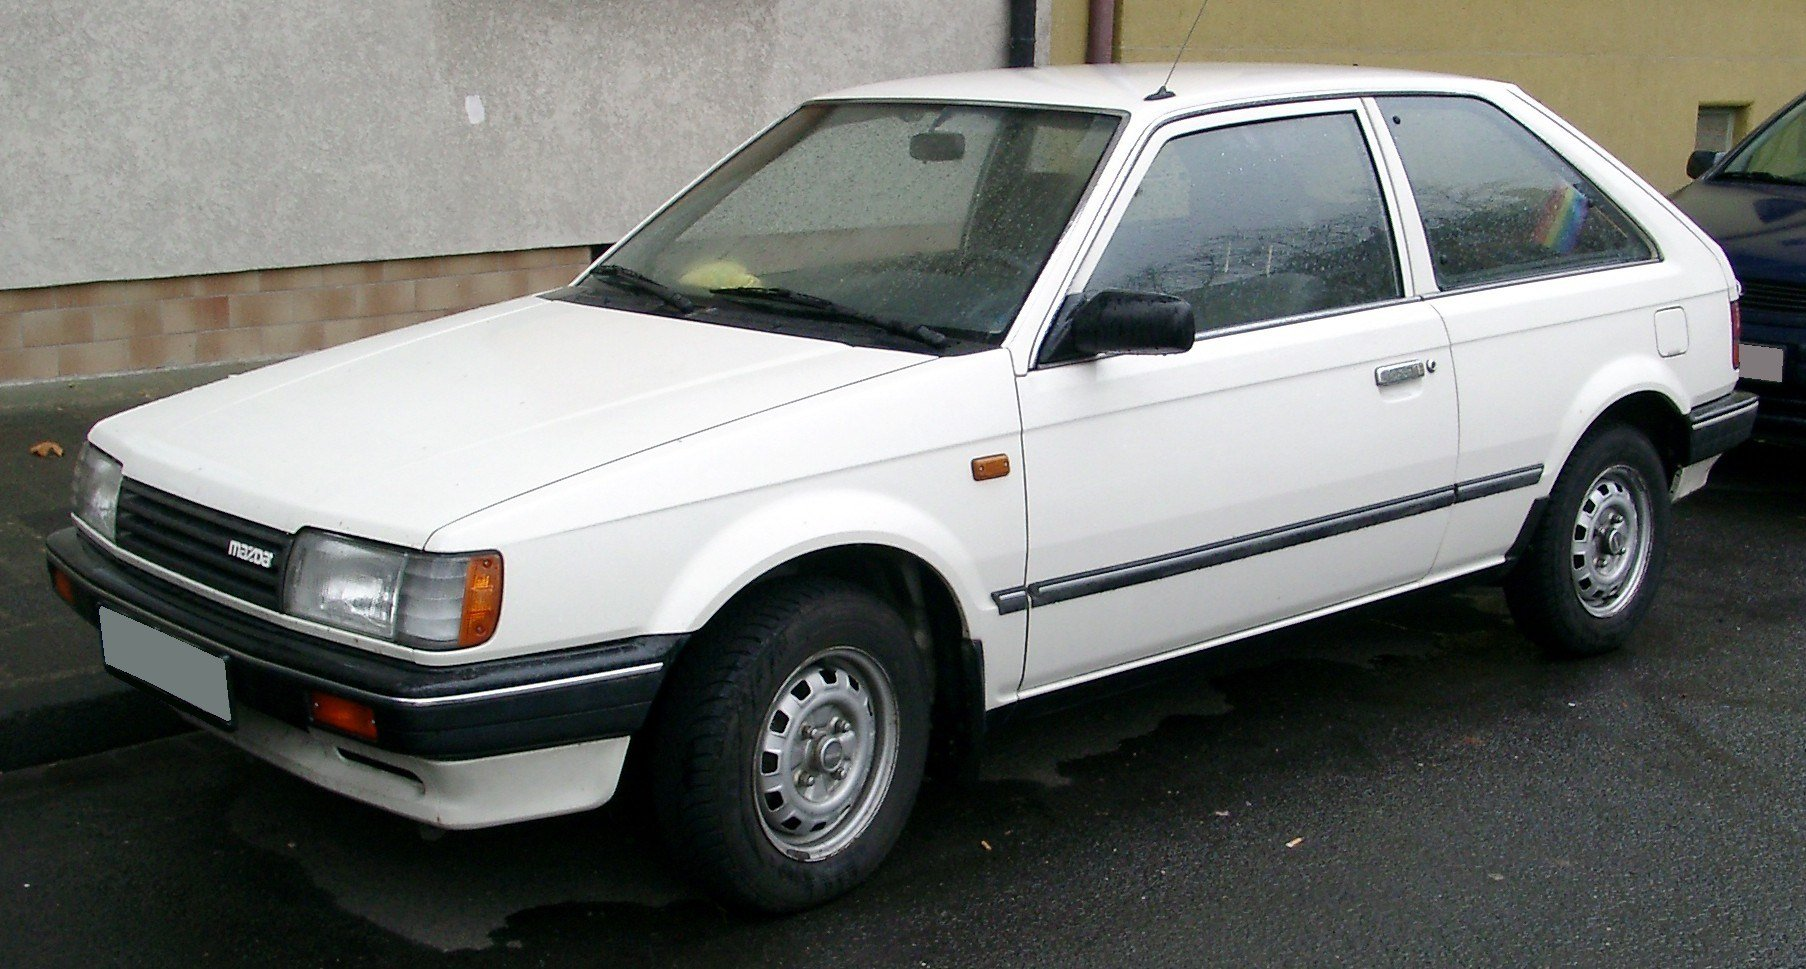 Latest The Old Hatchback And The Boy 1989 Mazda 323 The Garage Free Download